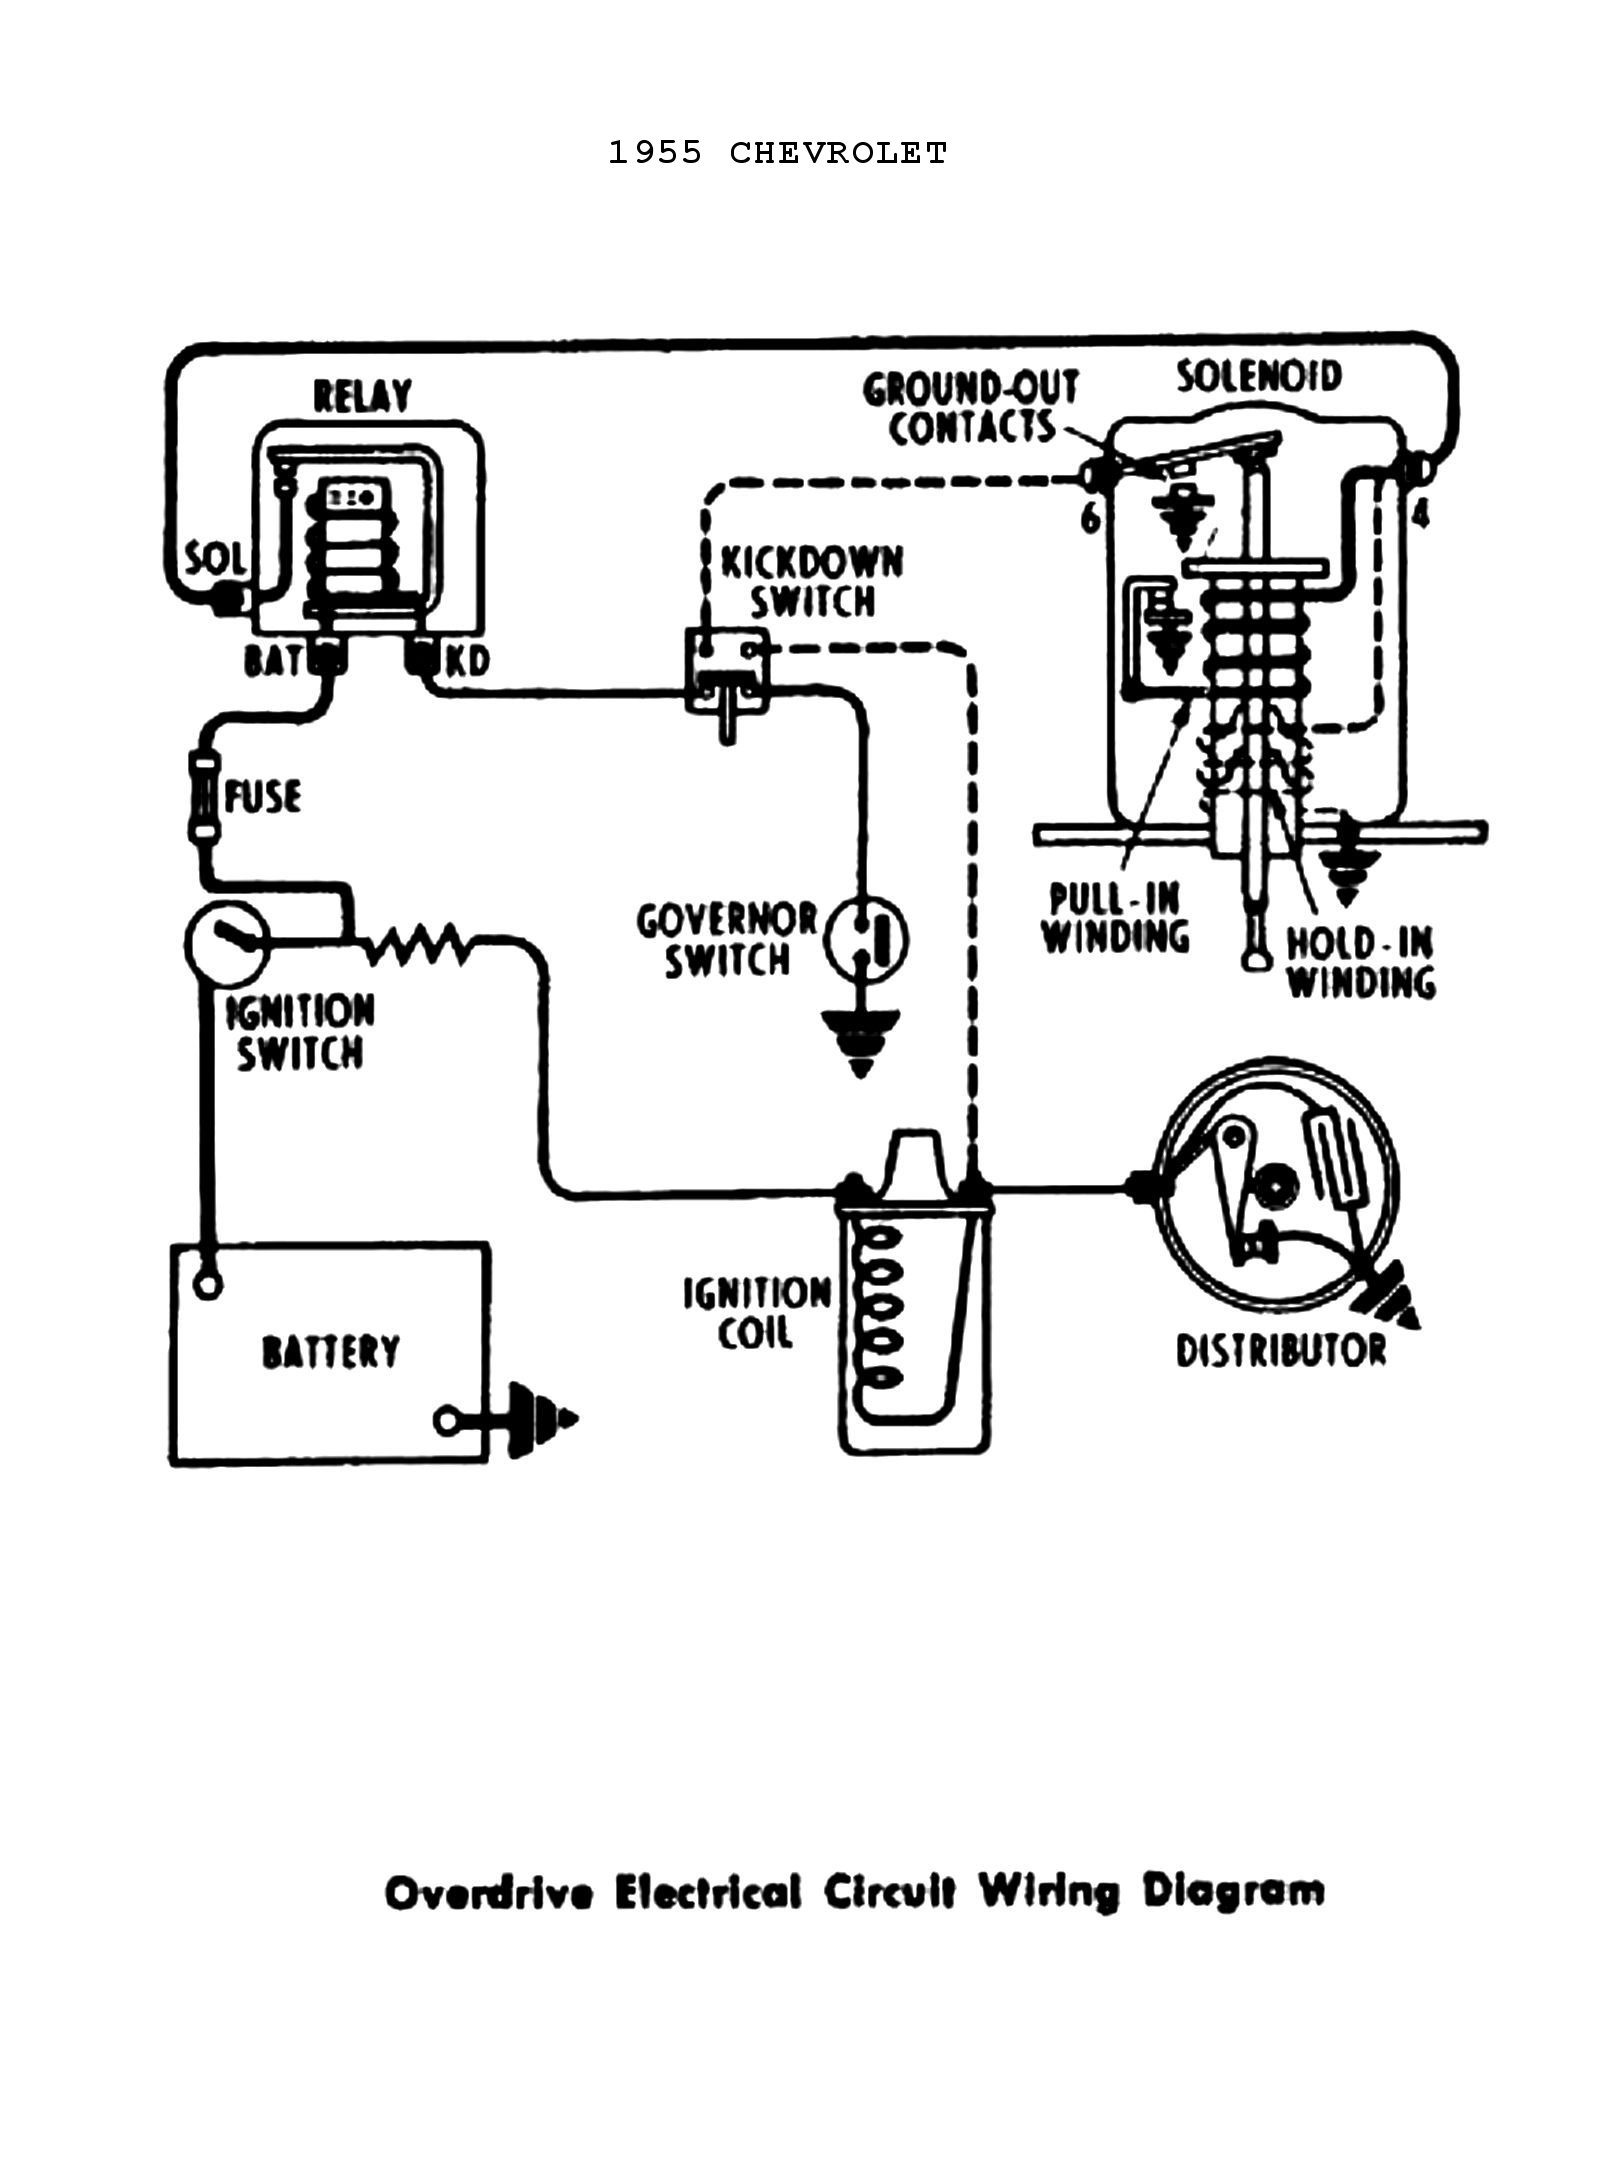 55odtrans1 chevy wiring diagrams Basic 12 Volt Wiring Diagrams at bayanpartner.co